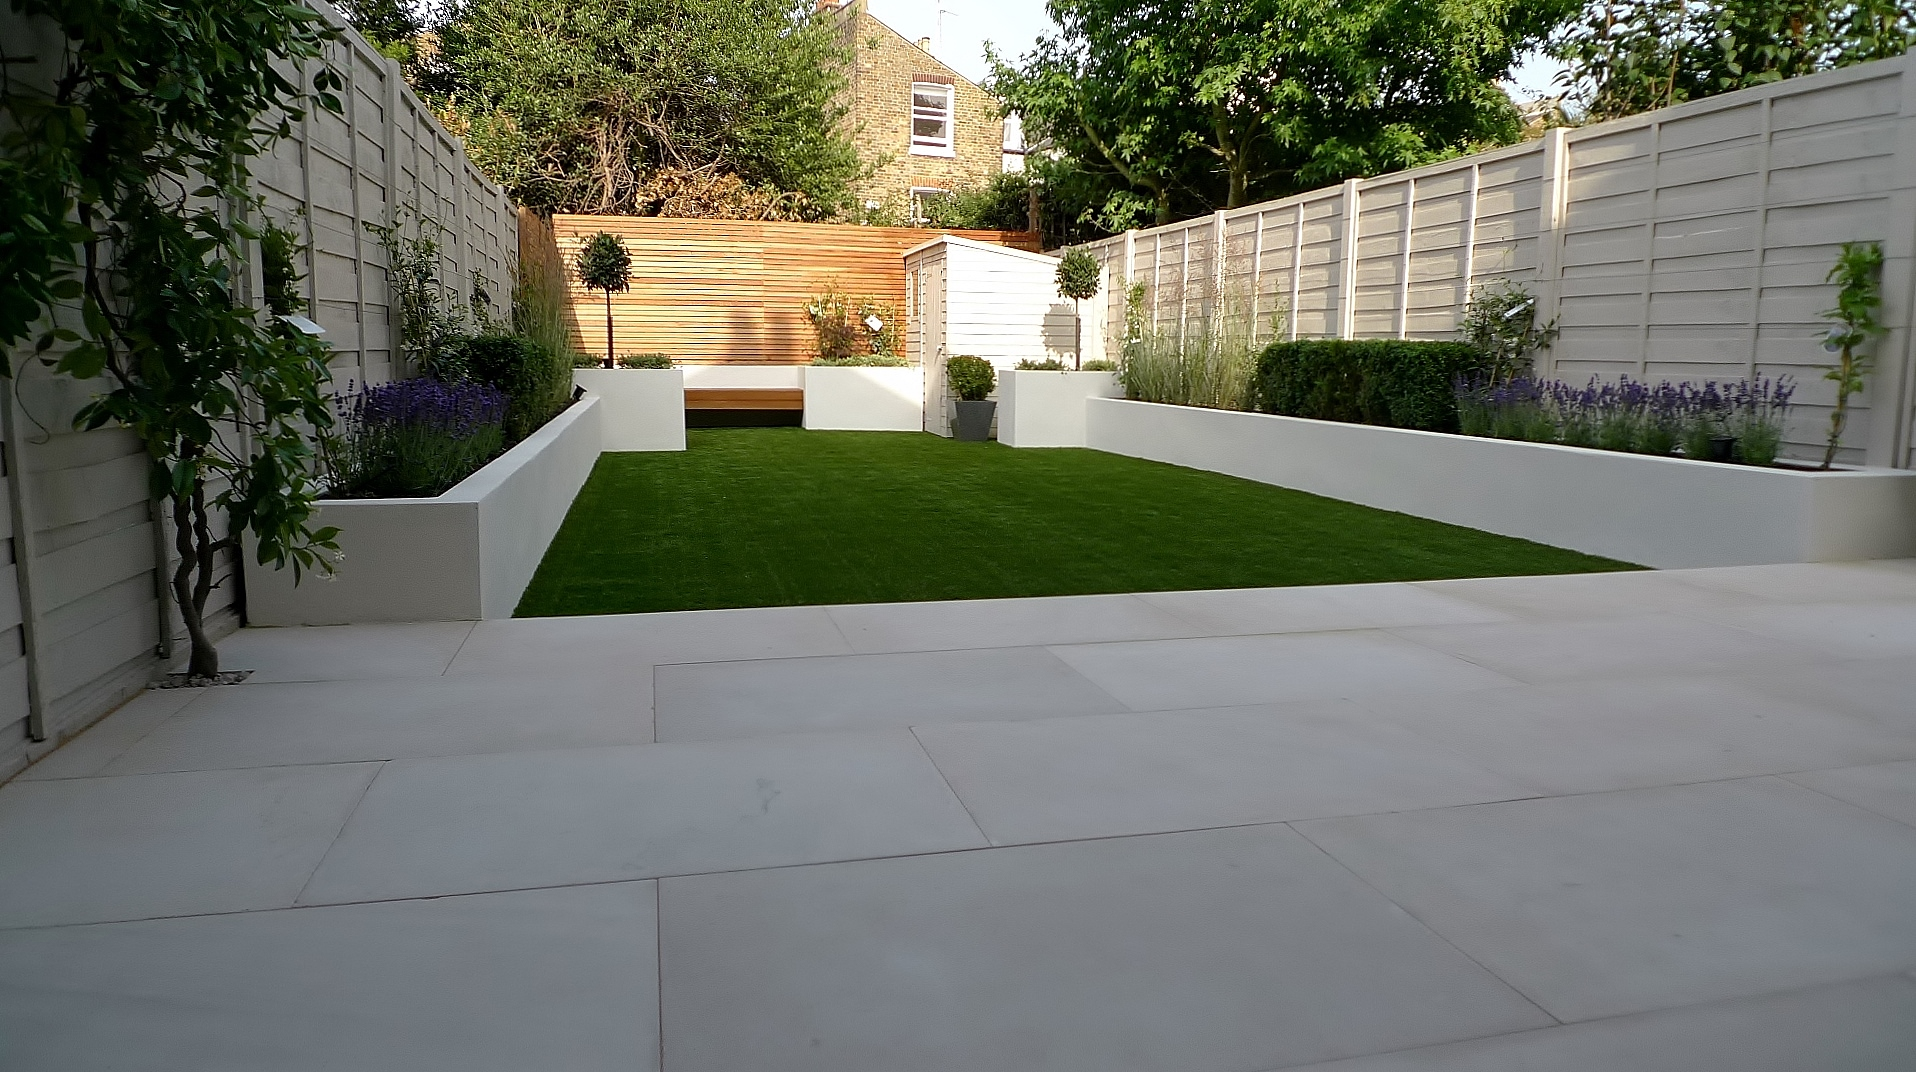 Anewgarden london garden blog for Garden design layout ideas